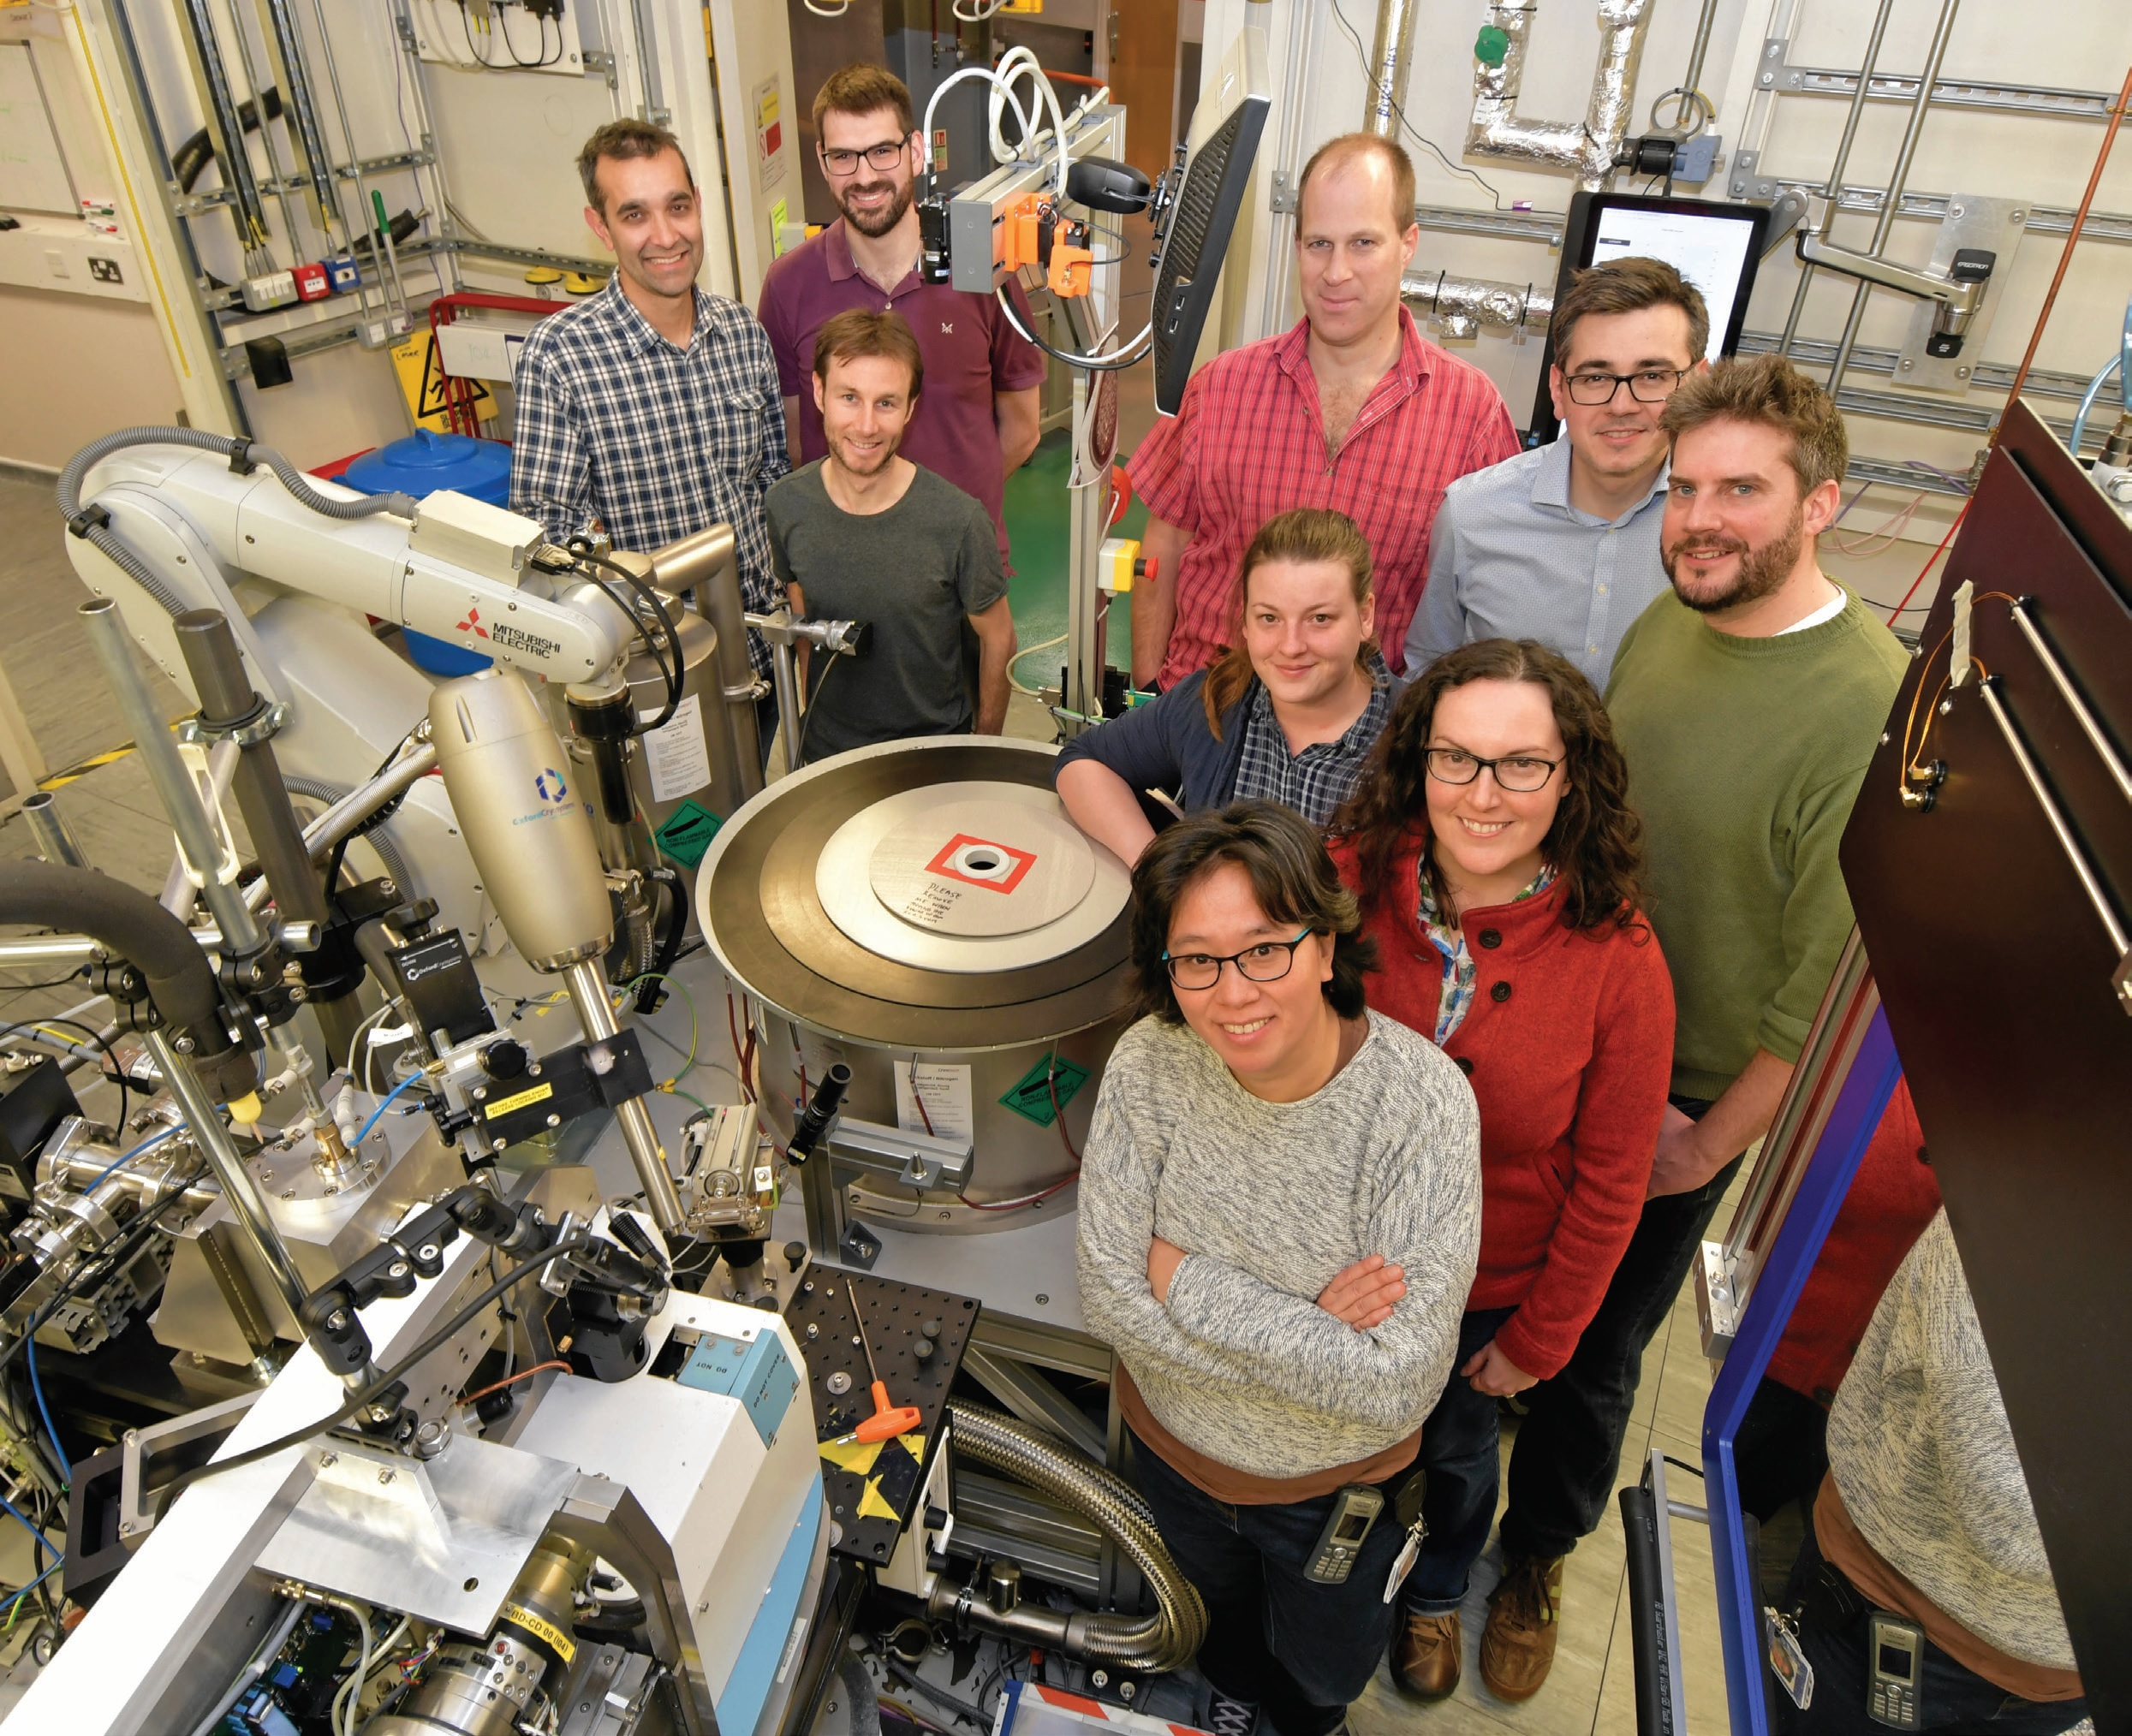 The I04-1 beamline team, clockwise from left: Jose Brandao-Neto, Richard Gillams, Frank von Delft (PBS), Alex Dias, Romain Talon, Ailsa Powell, Alice Douangamath, Anthony Aimon, Rachel Skyner.